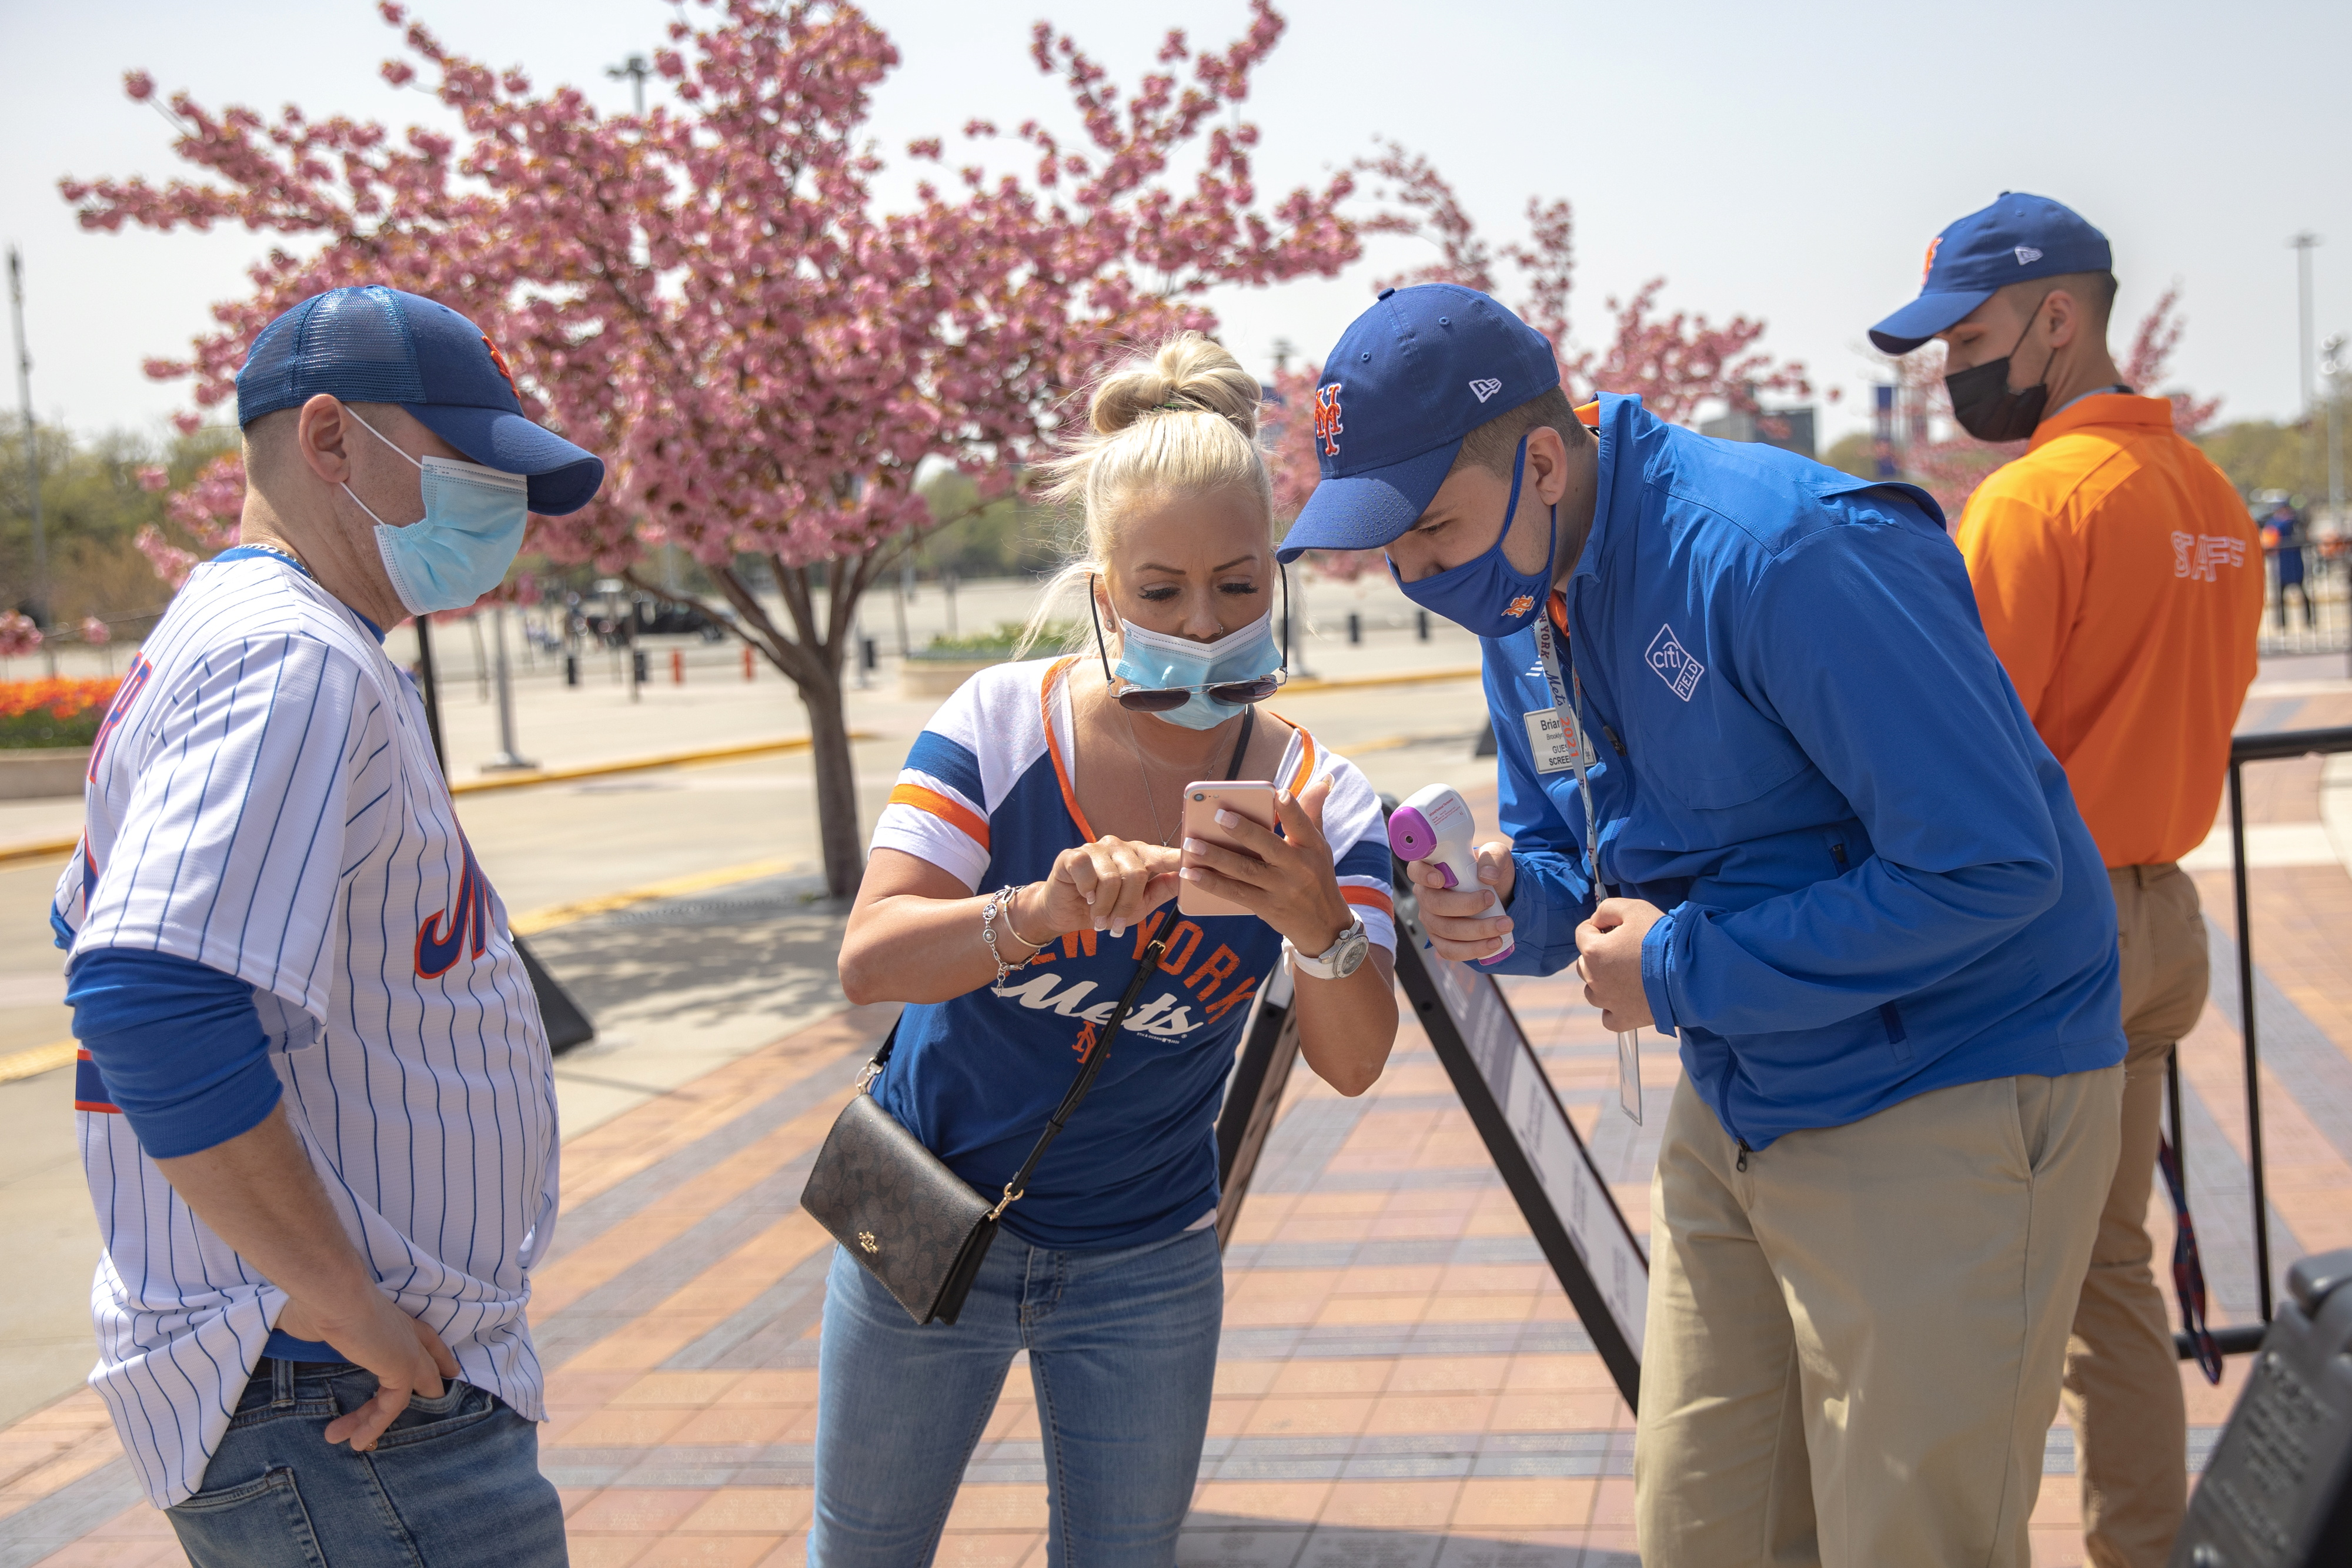 A fan shows a vaccine passport on her phone as she arrives for a New York Mets game, during the coronavirus disease (COVID-19) pandemic, at Citi Field in the Queens borough of New York City, U.S., April 24, 2021. REUTERS/Jeenah Moon